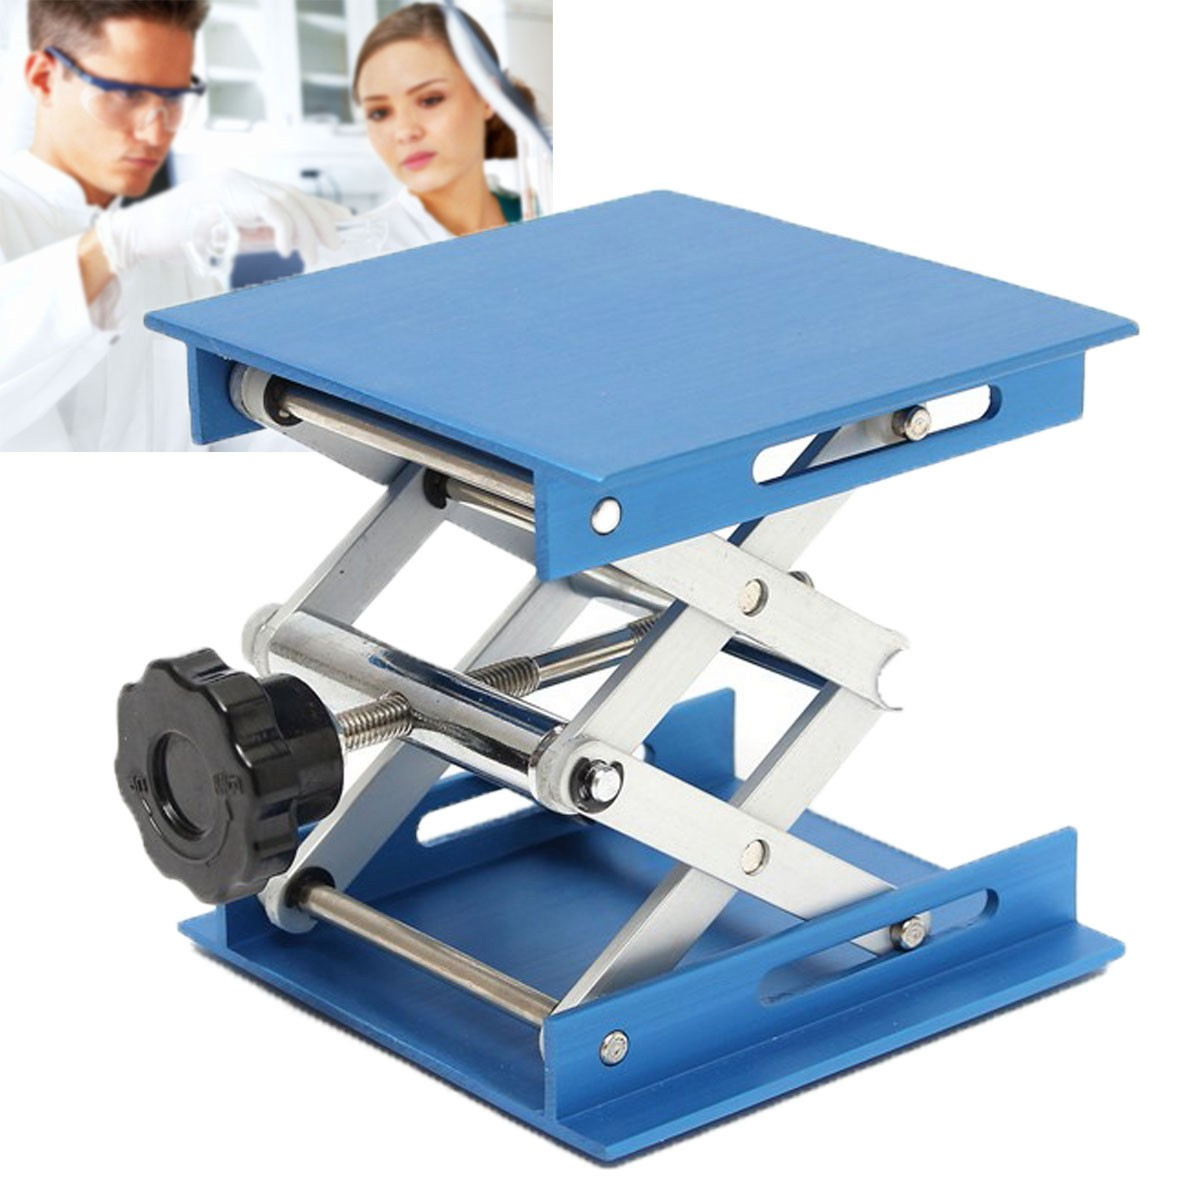 4inch Aluminum Lifting Platforms Stand Rack Scissor Lab-Lifting Oxide Lab Jack Stand Scissor Utility Tools 30KG Max Load